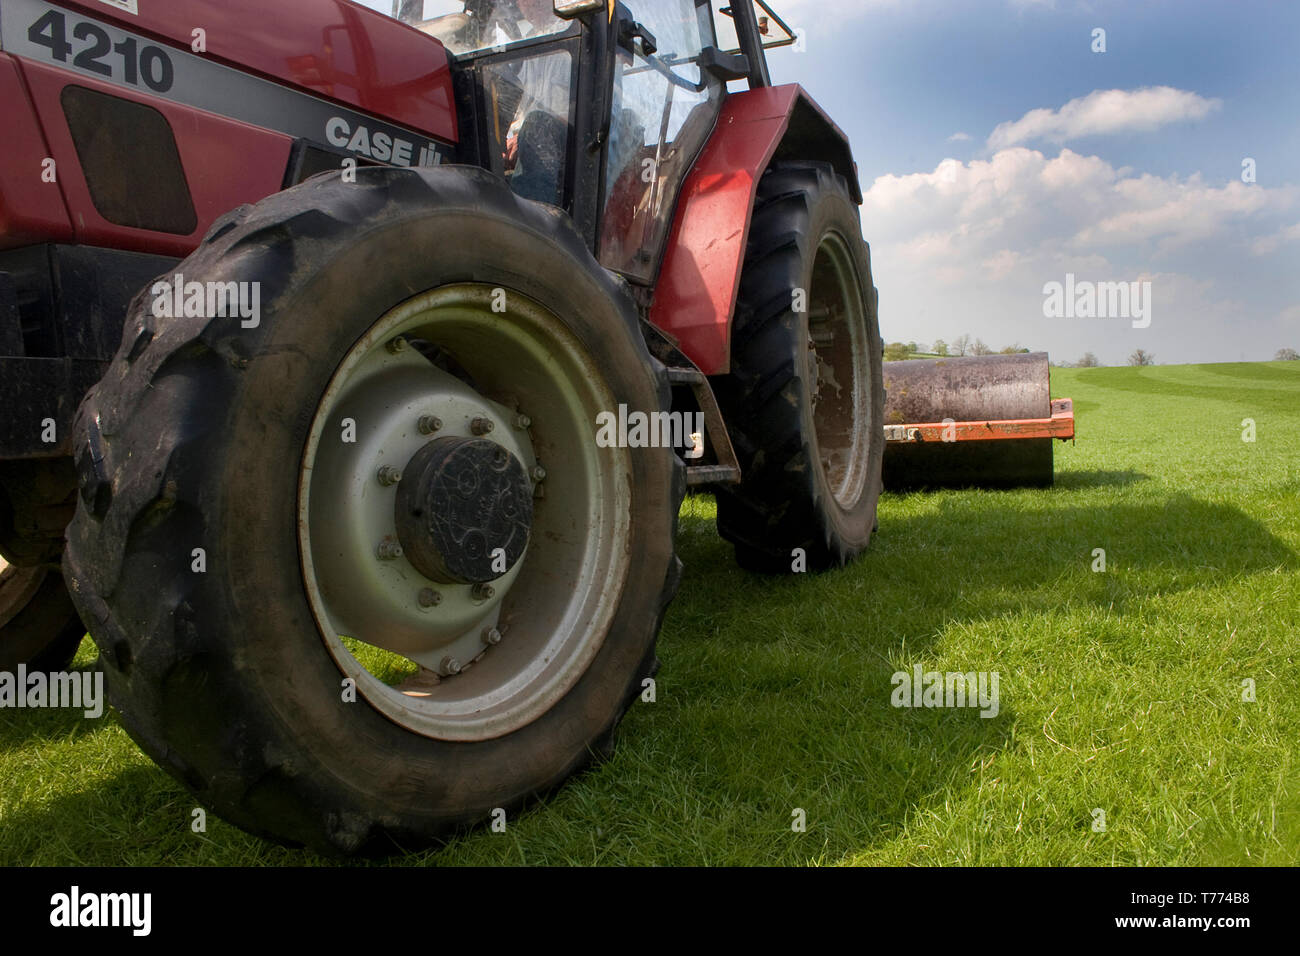 low angle of tractor grass roller preparing pasture, northern England - Stock Image